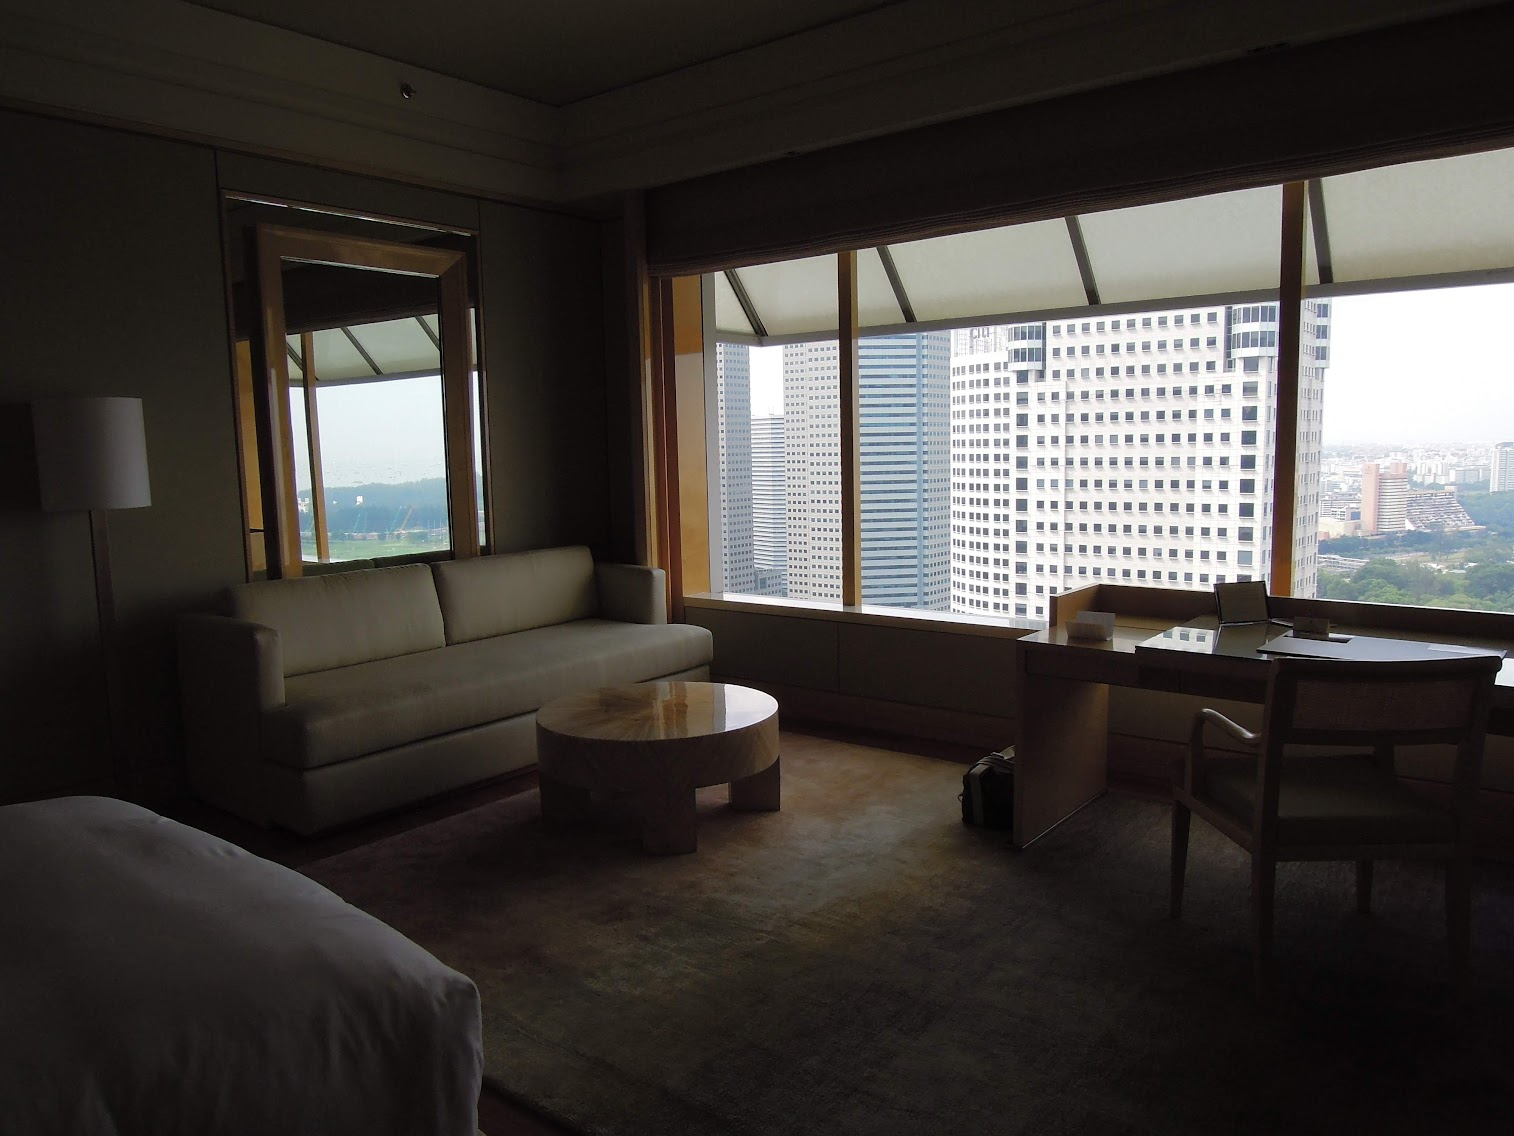 The Ritz-Carlton Millennia Singapore Room 3109